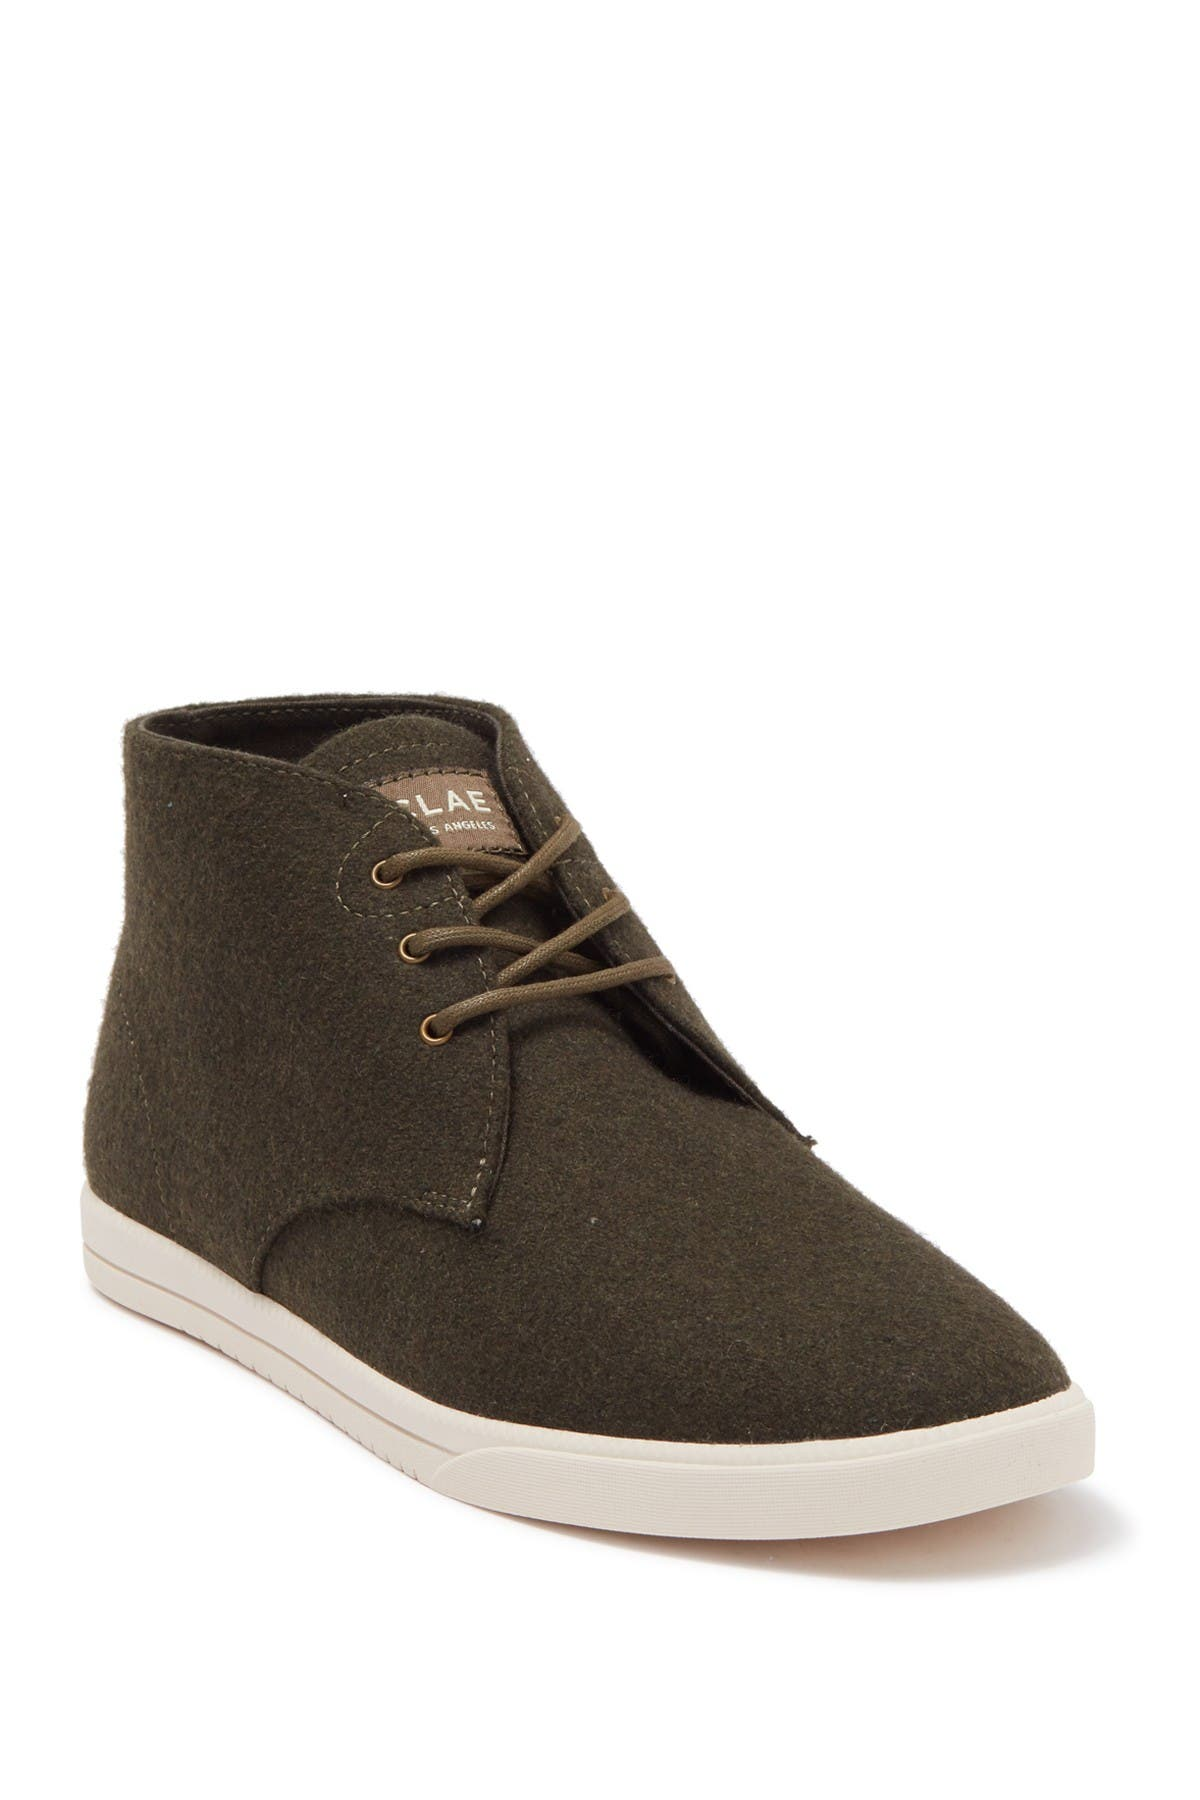 Image of Clae Strayhorn High-Top Sneaker